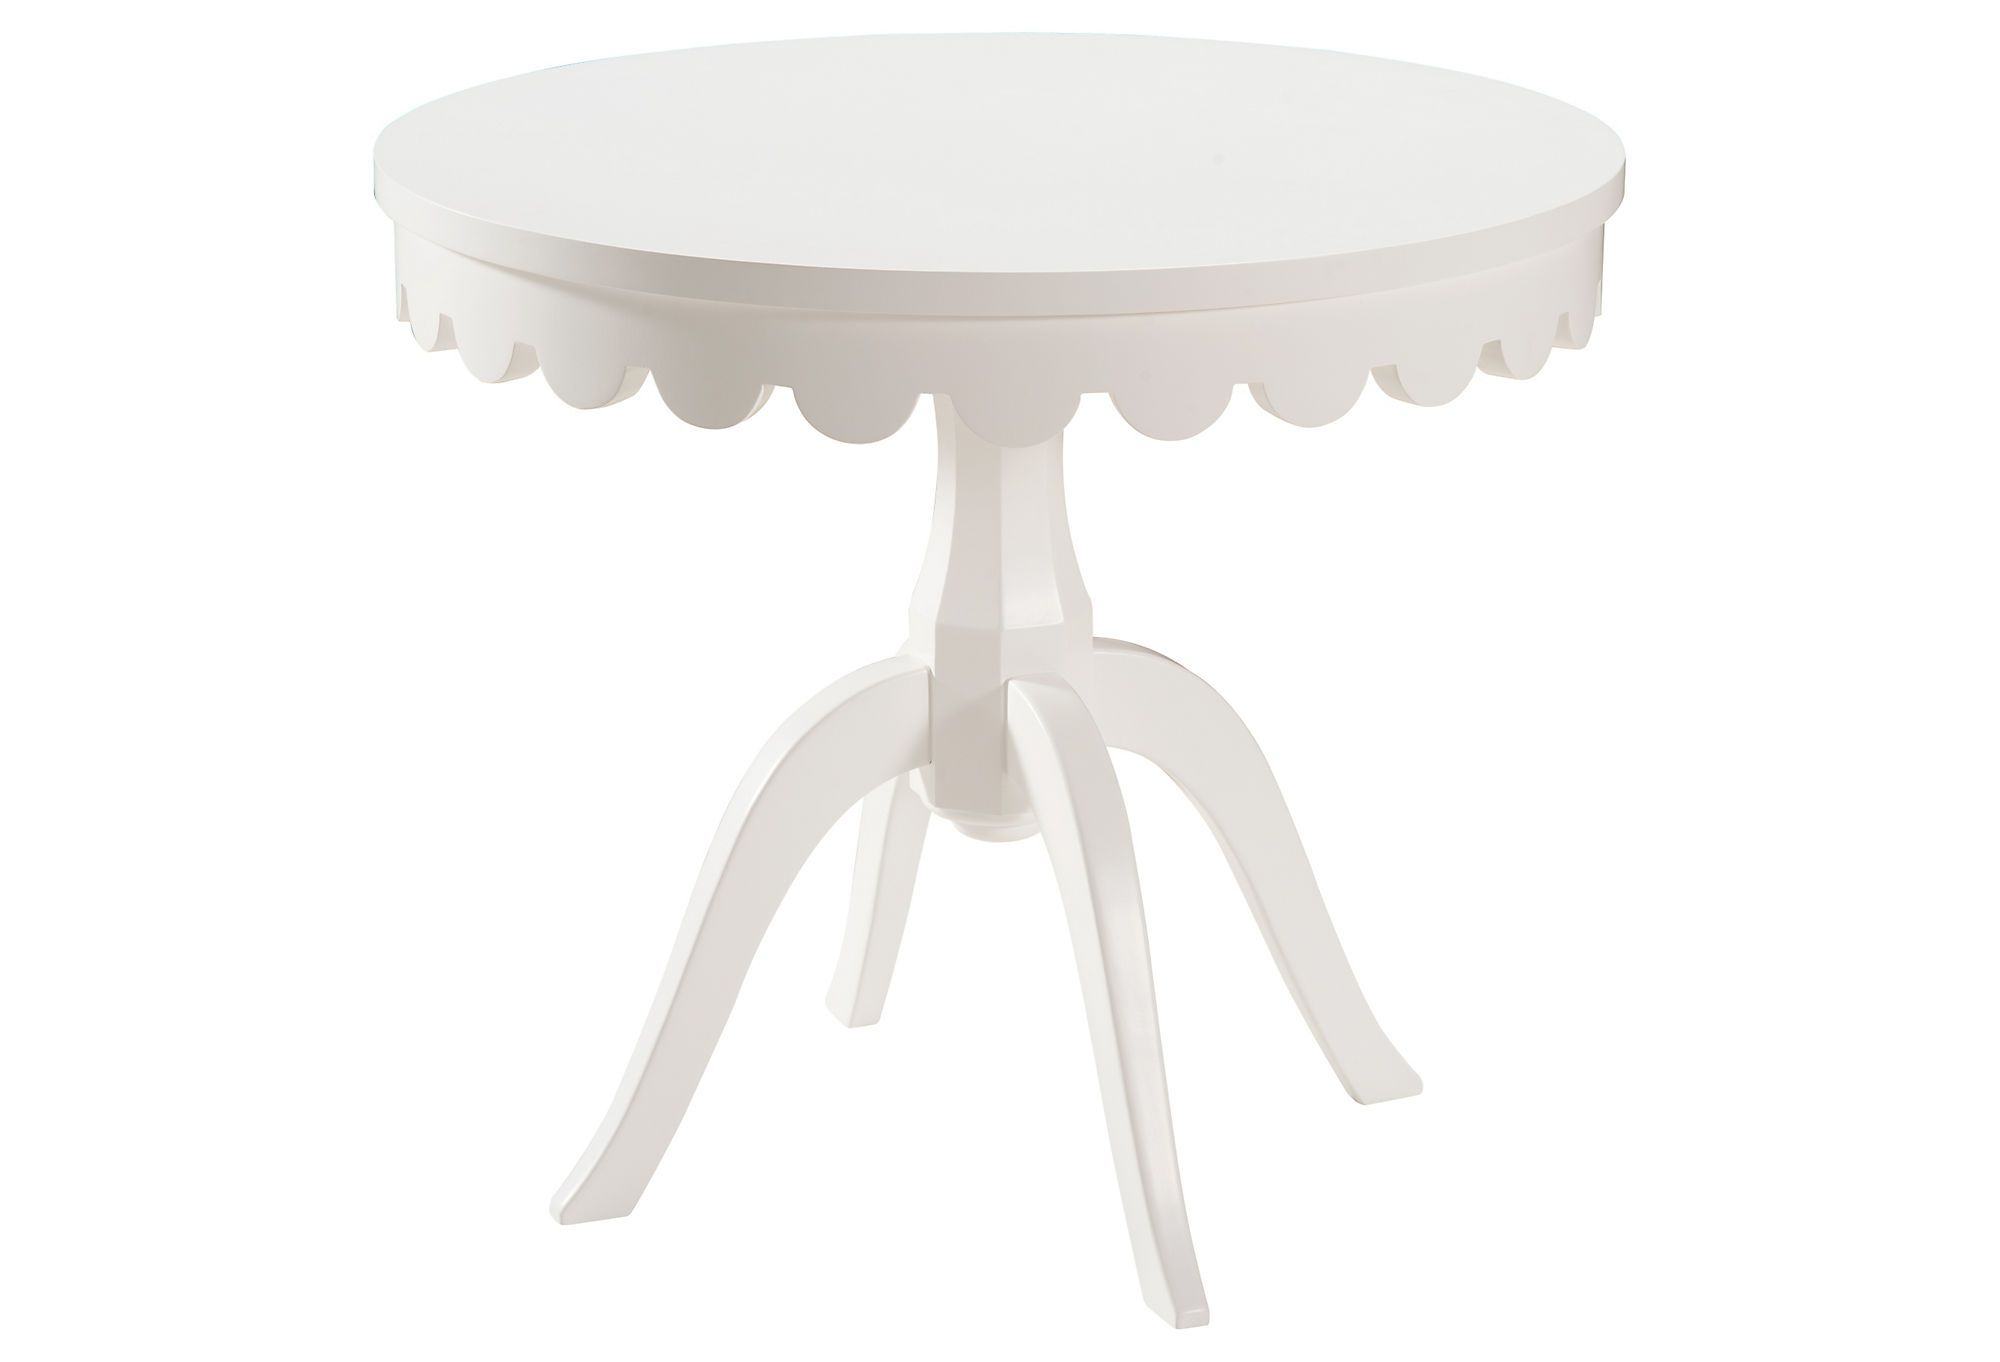 Lucia Side Table White Connecticut Classic One Kings Lane White Round Tables Round Furniture White Accent Table